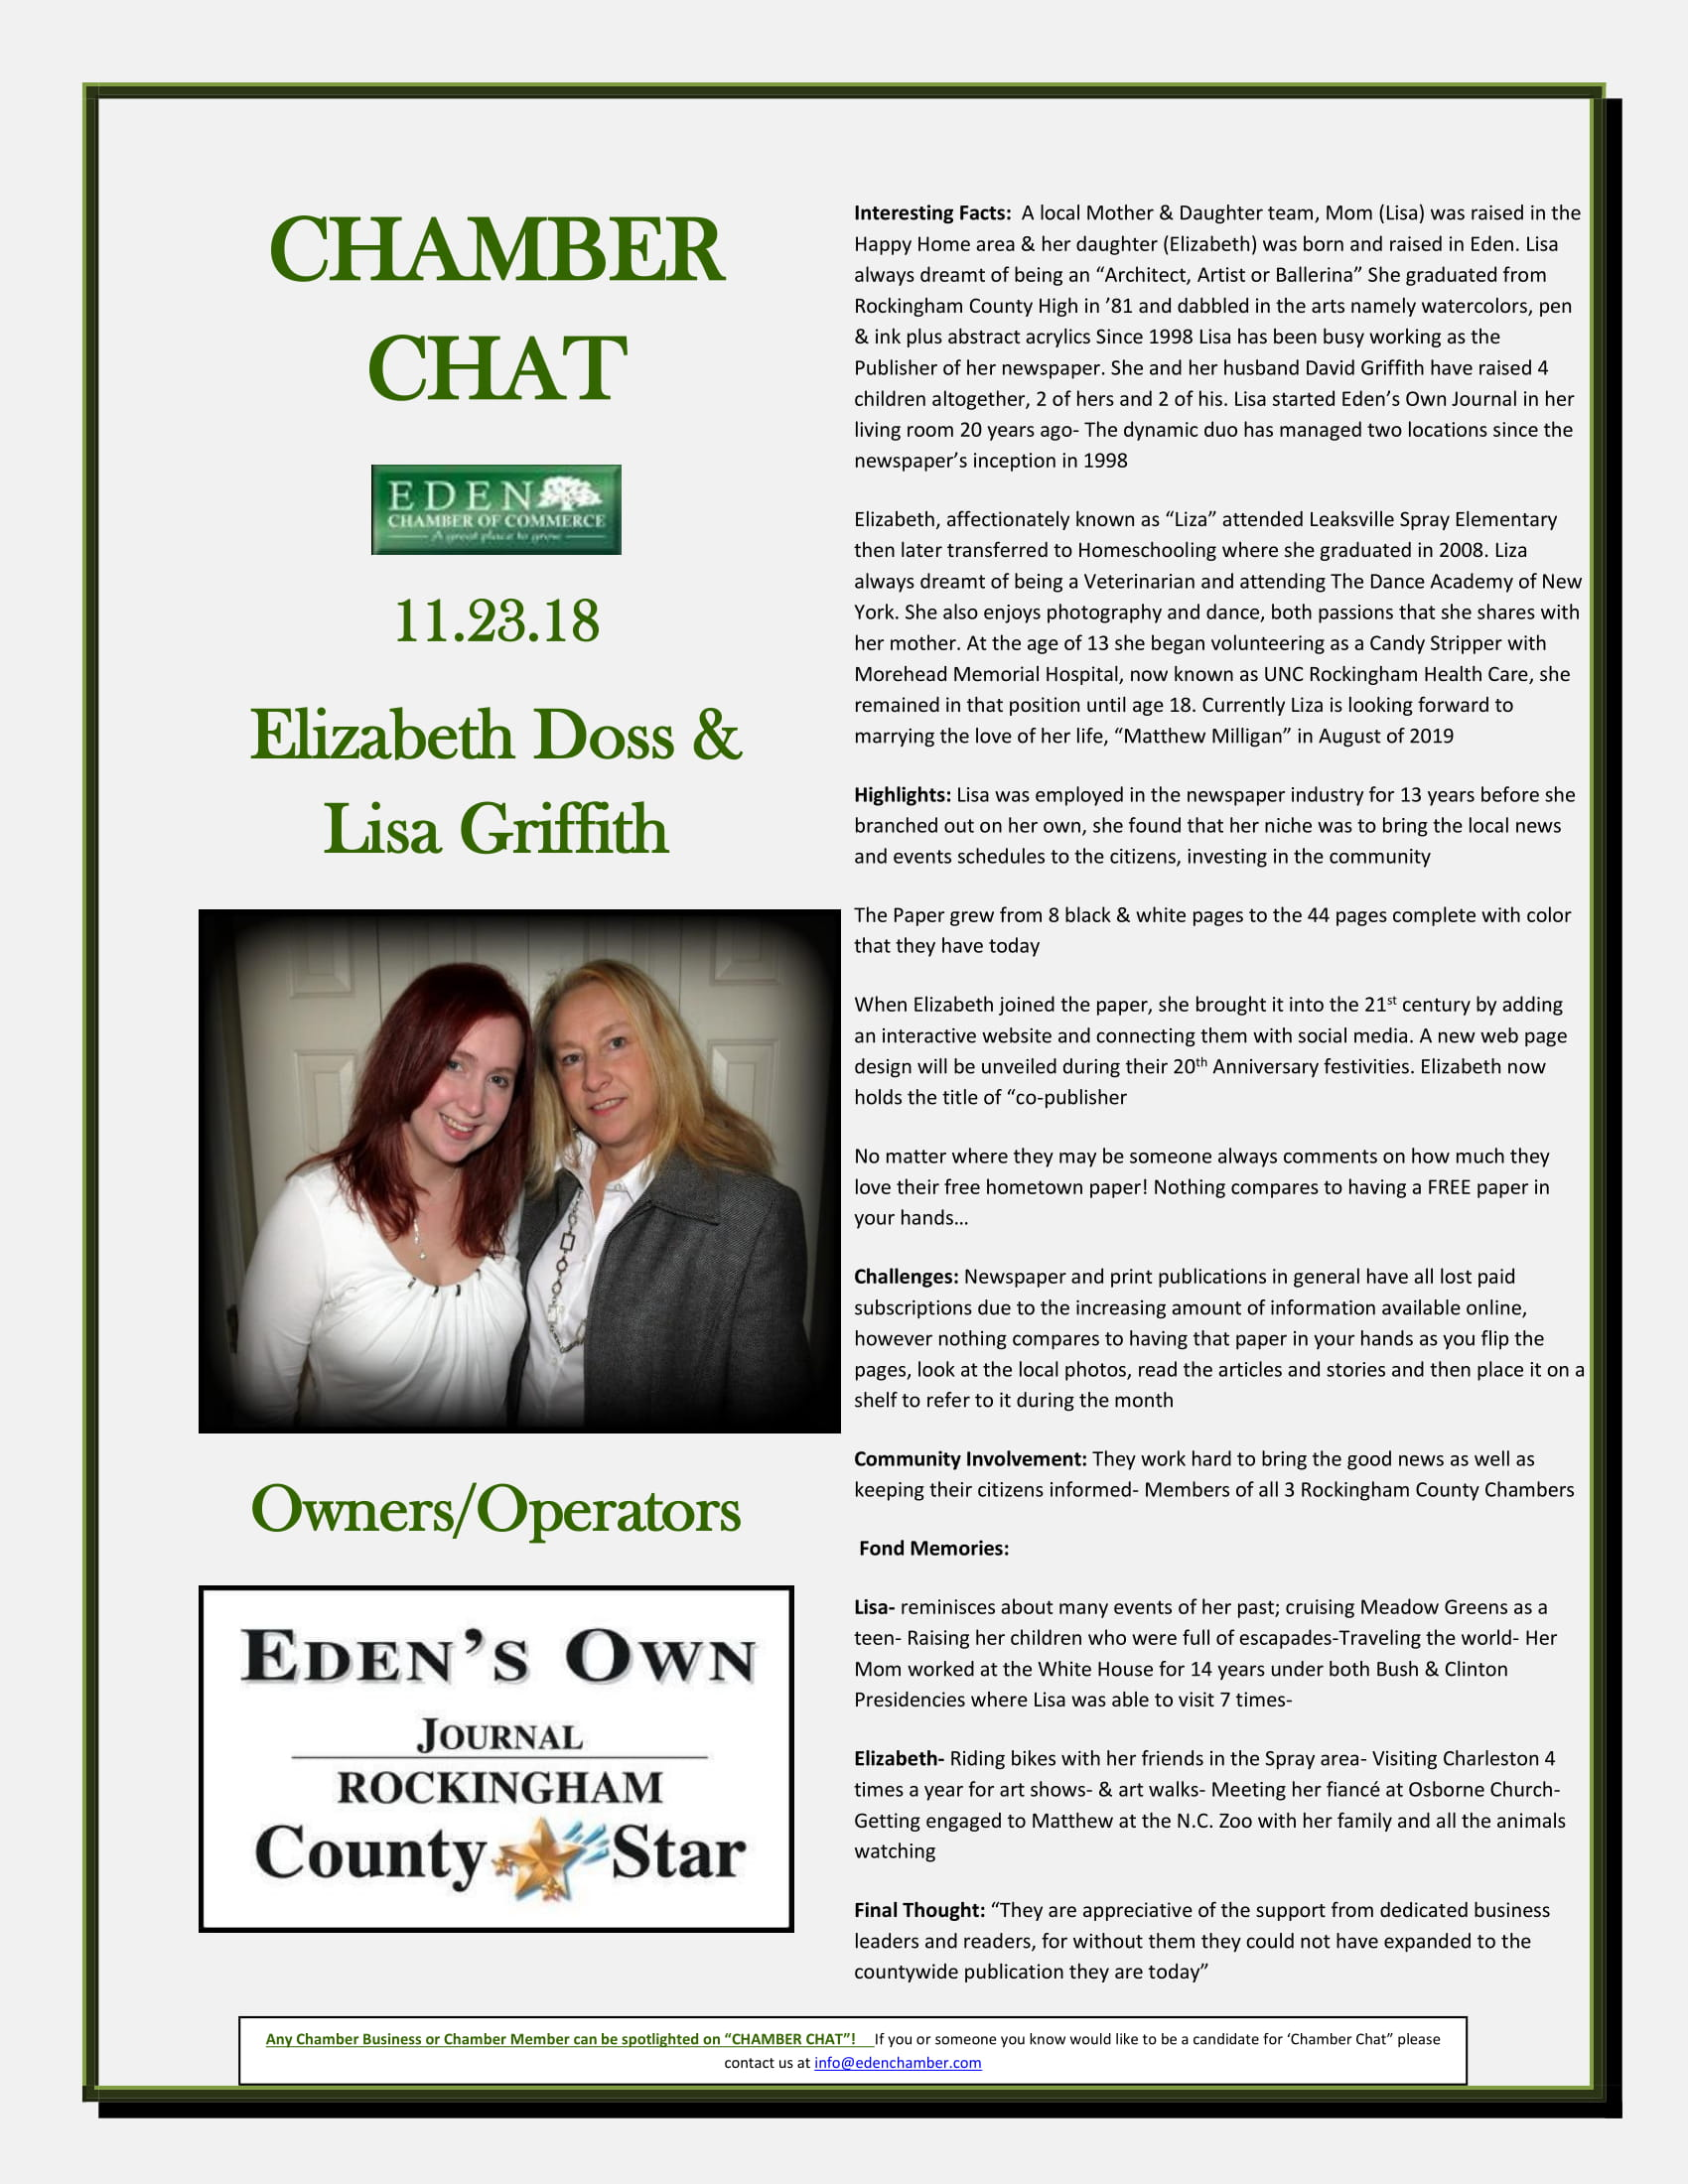 CHAMBER-CHAT-Eden's-Own-Journal-11.23.18-1.jpg